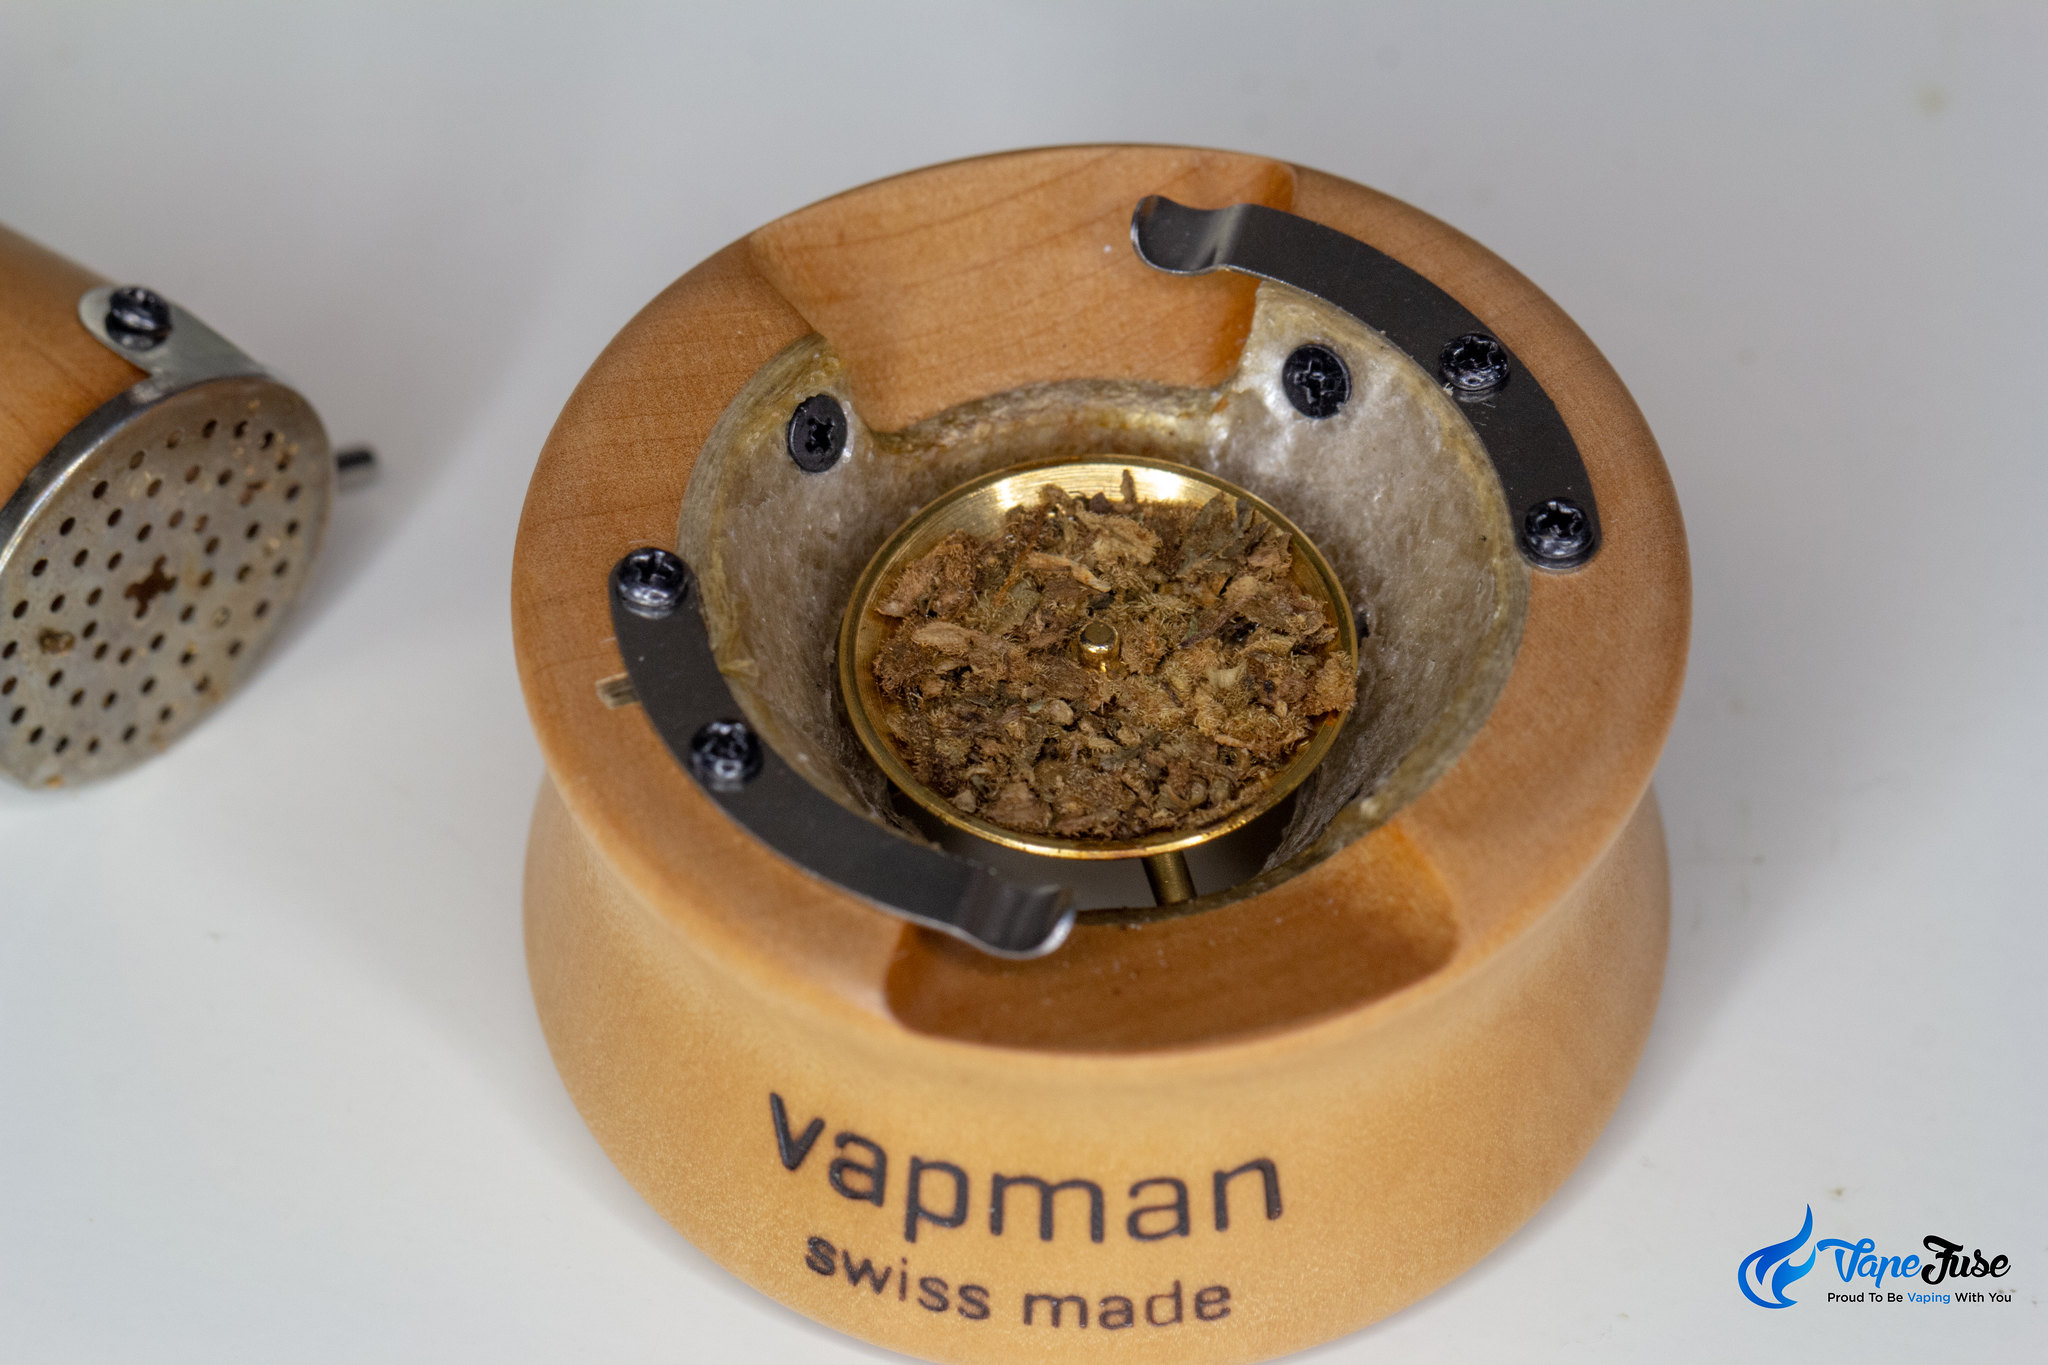 VapMan Manual Vaporizer